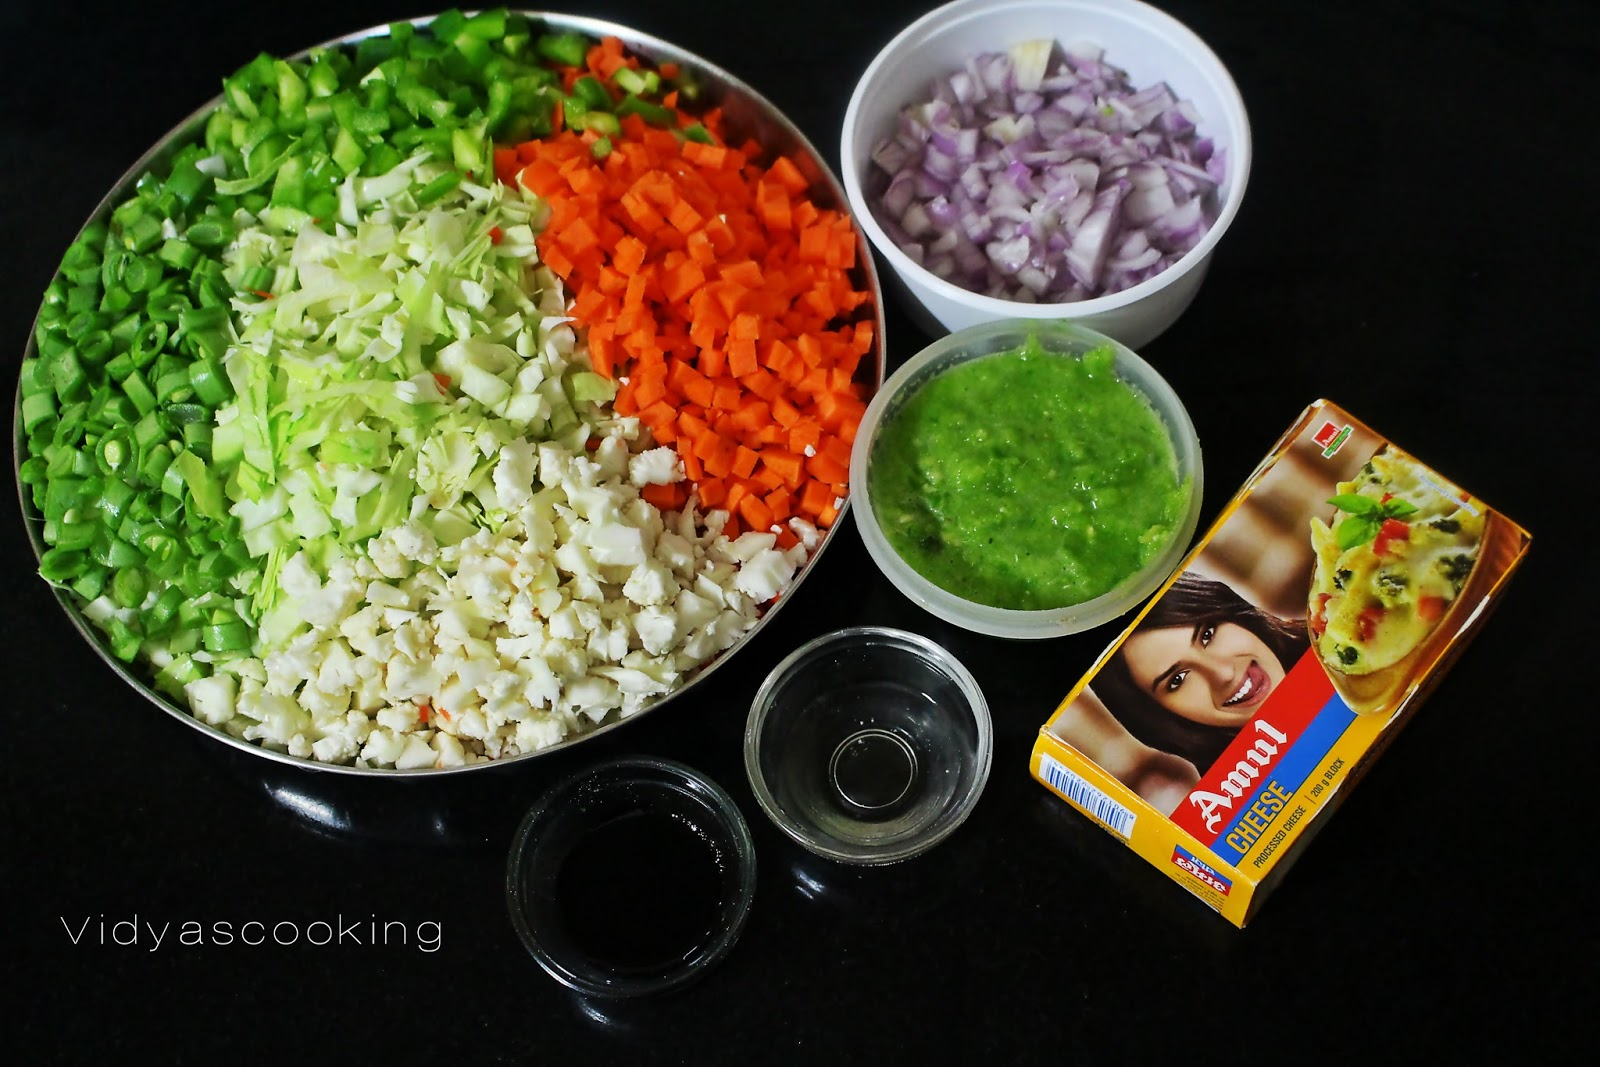 Vidyascooking: Mixed Vegetable Chilly Cheese Baozi